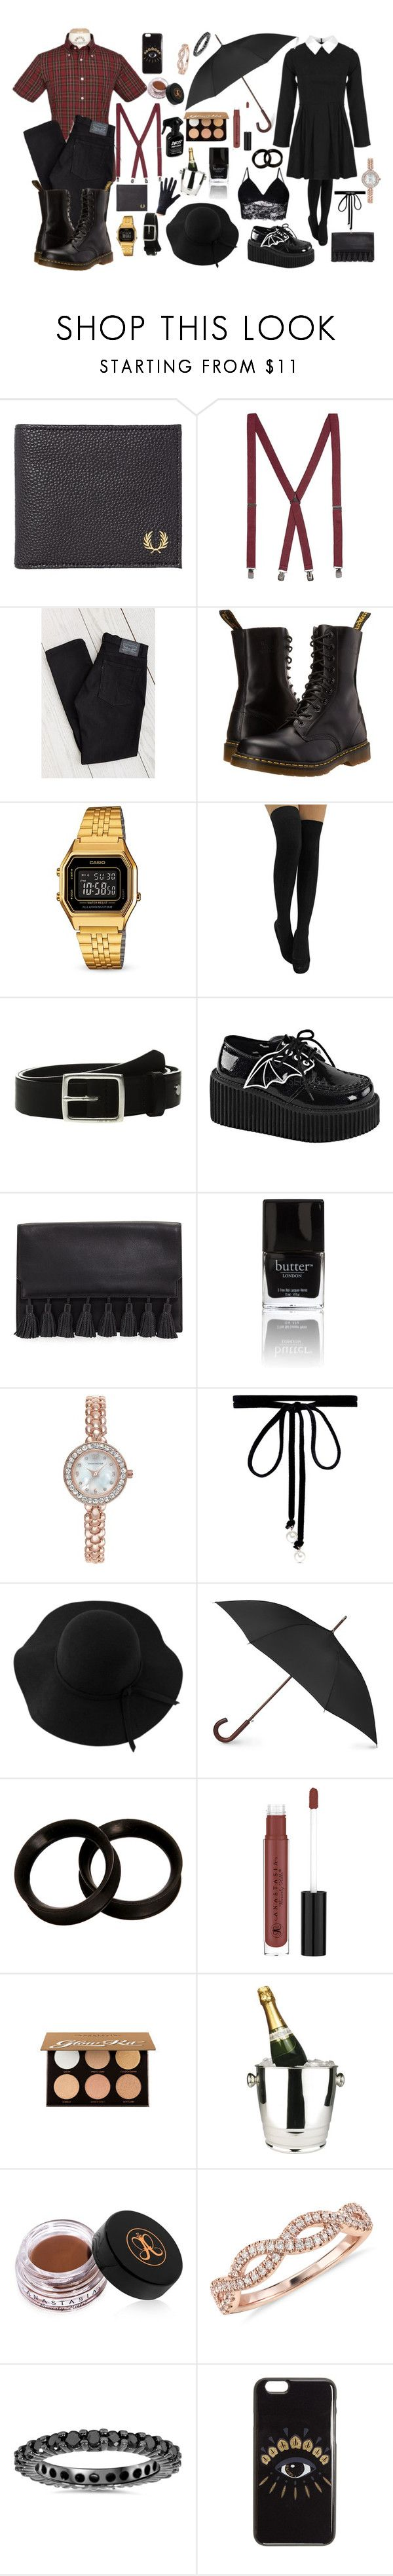 """Smart casual date"" by antonsmeeton ❤ liked on Polyvore featuring Fred Perry, Topman, Dr. Martens, Levi's, Casio, rag & bone, Demonia, Rebecca Minkoff, Butter London and Charter Club"